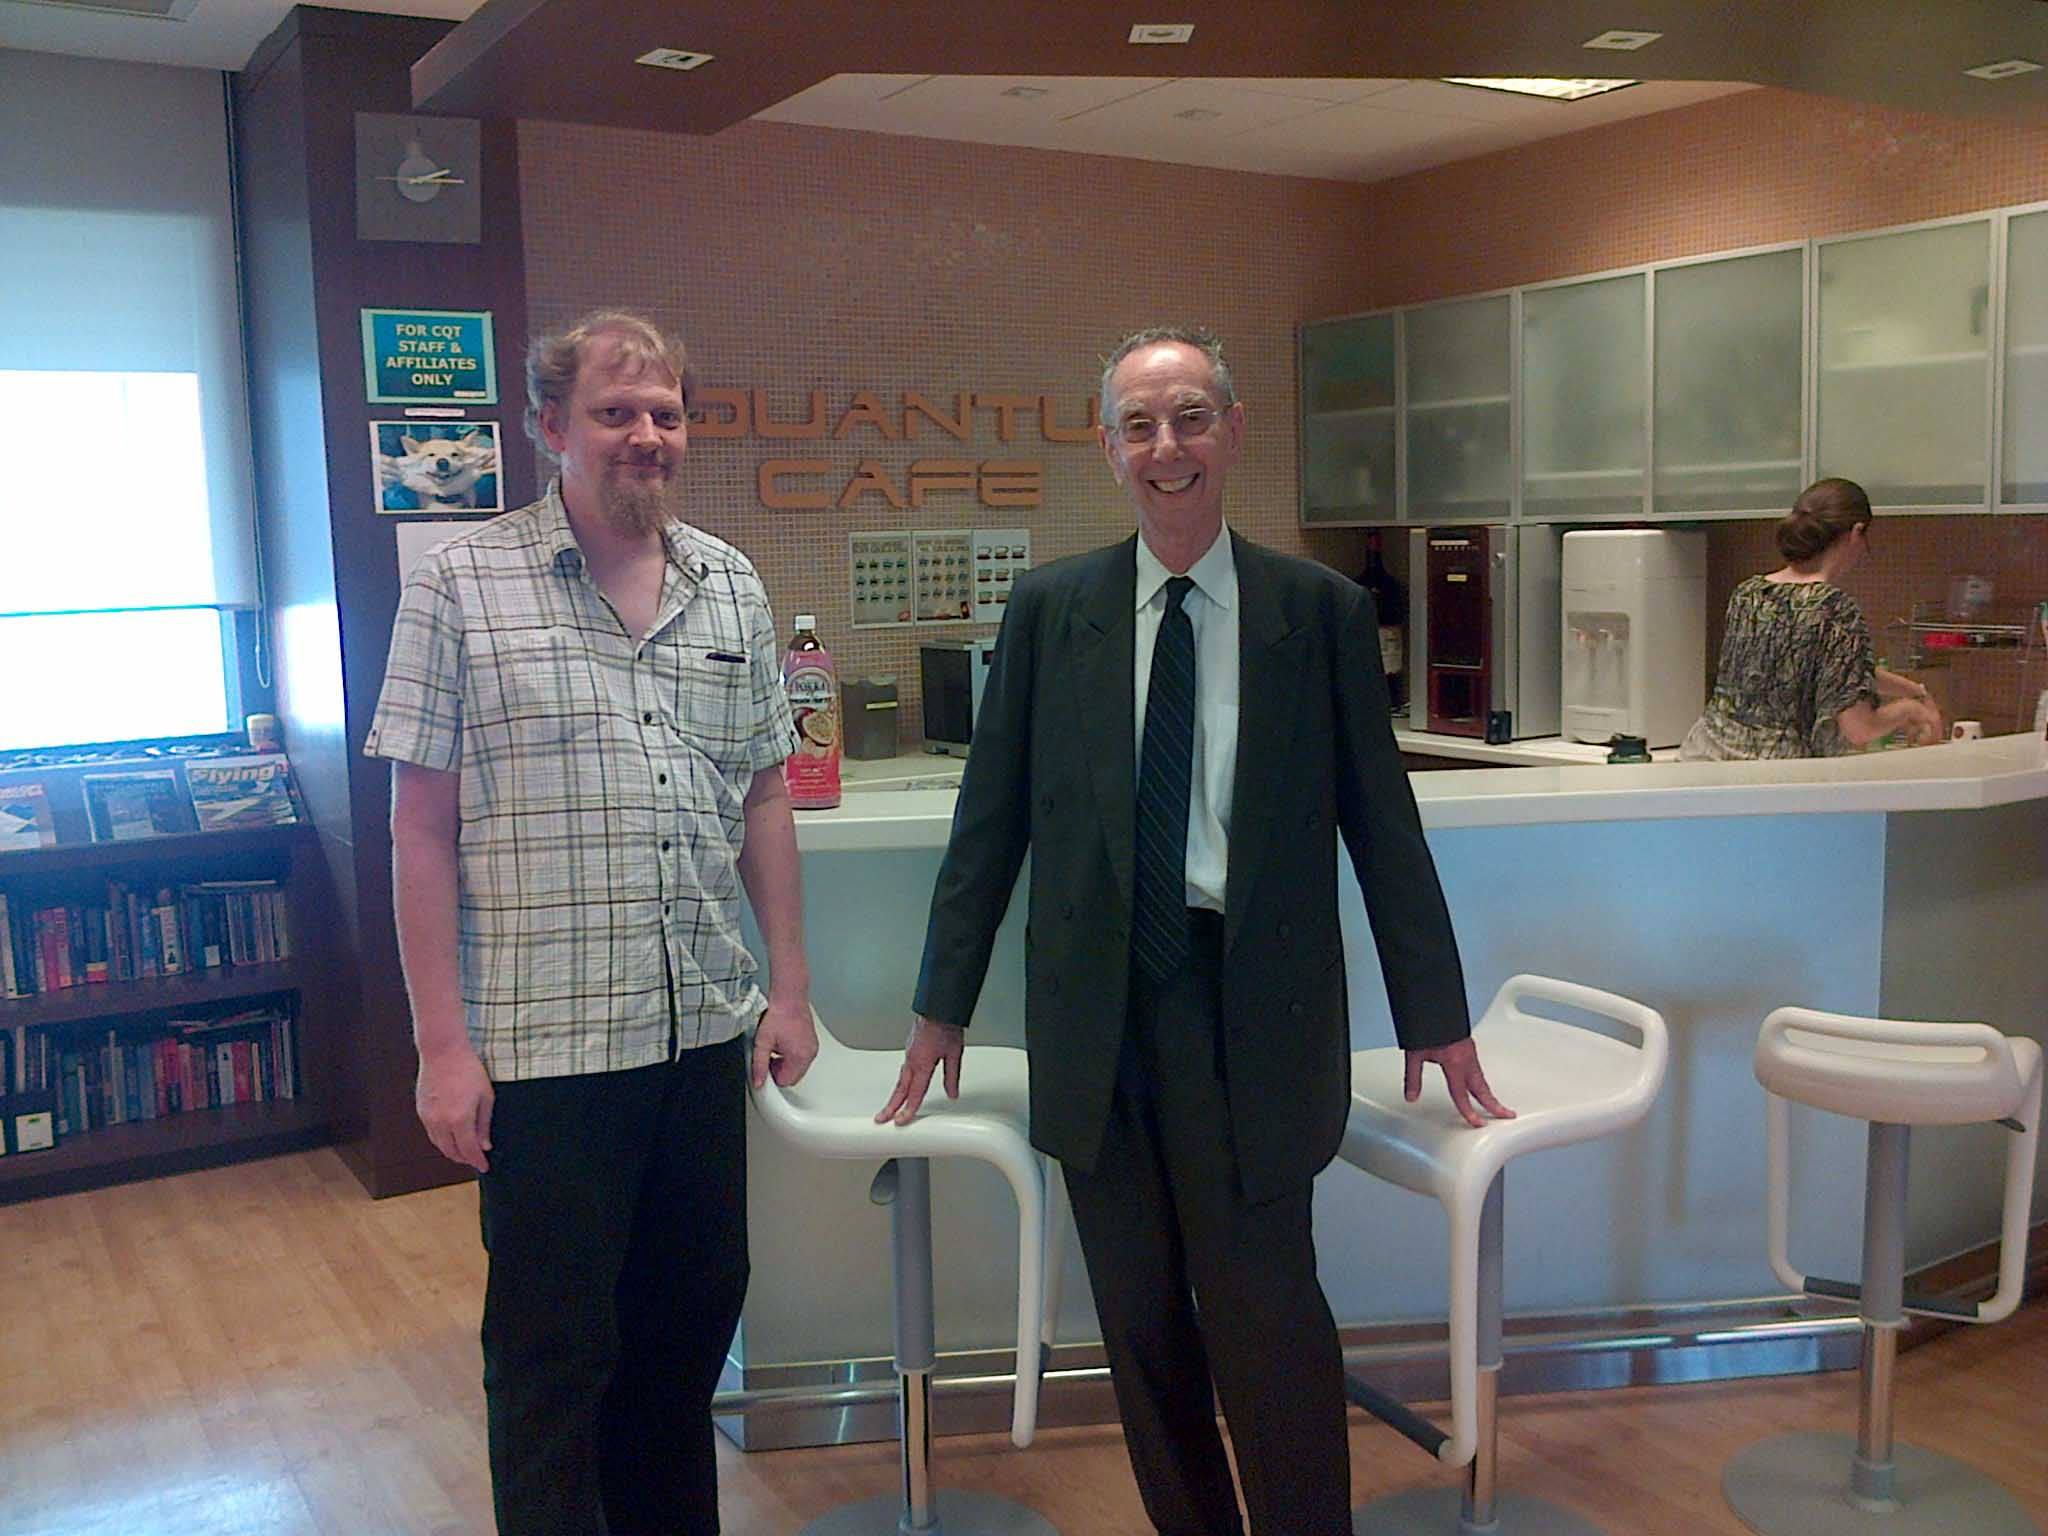 David visits with Dr. Christian Kurtsiefer(left) at Singapore's Center for Quantum Technologies (QTC) in July 2014